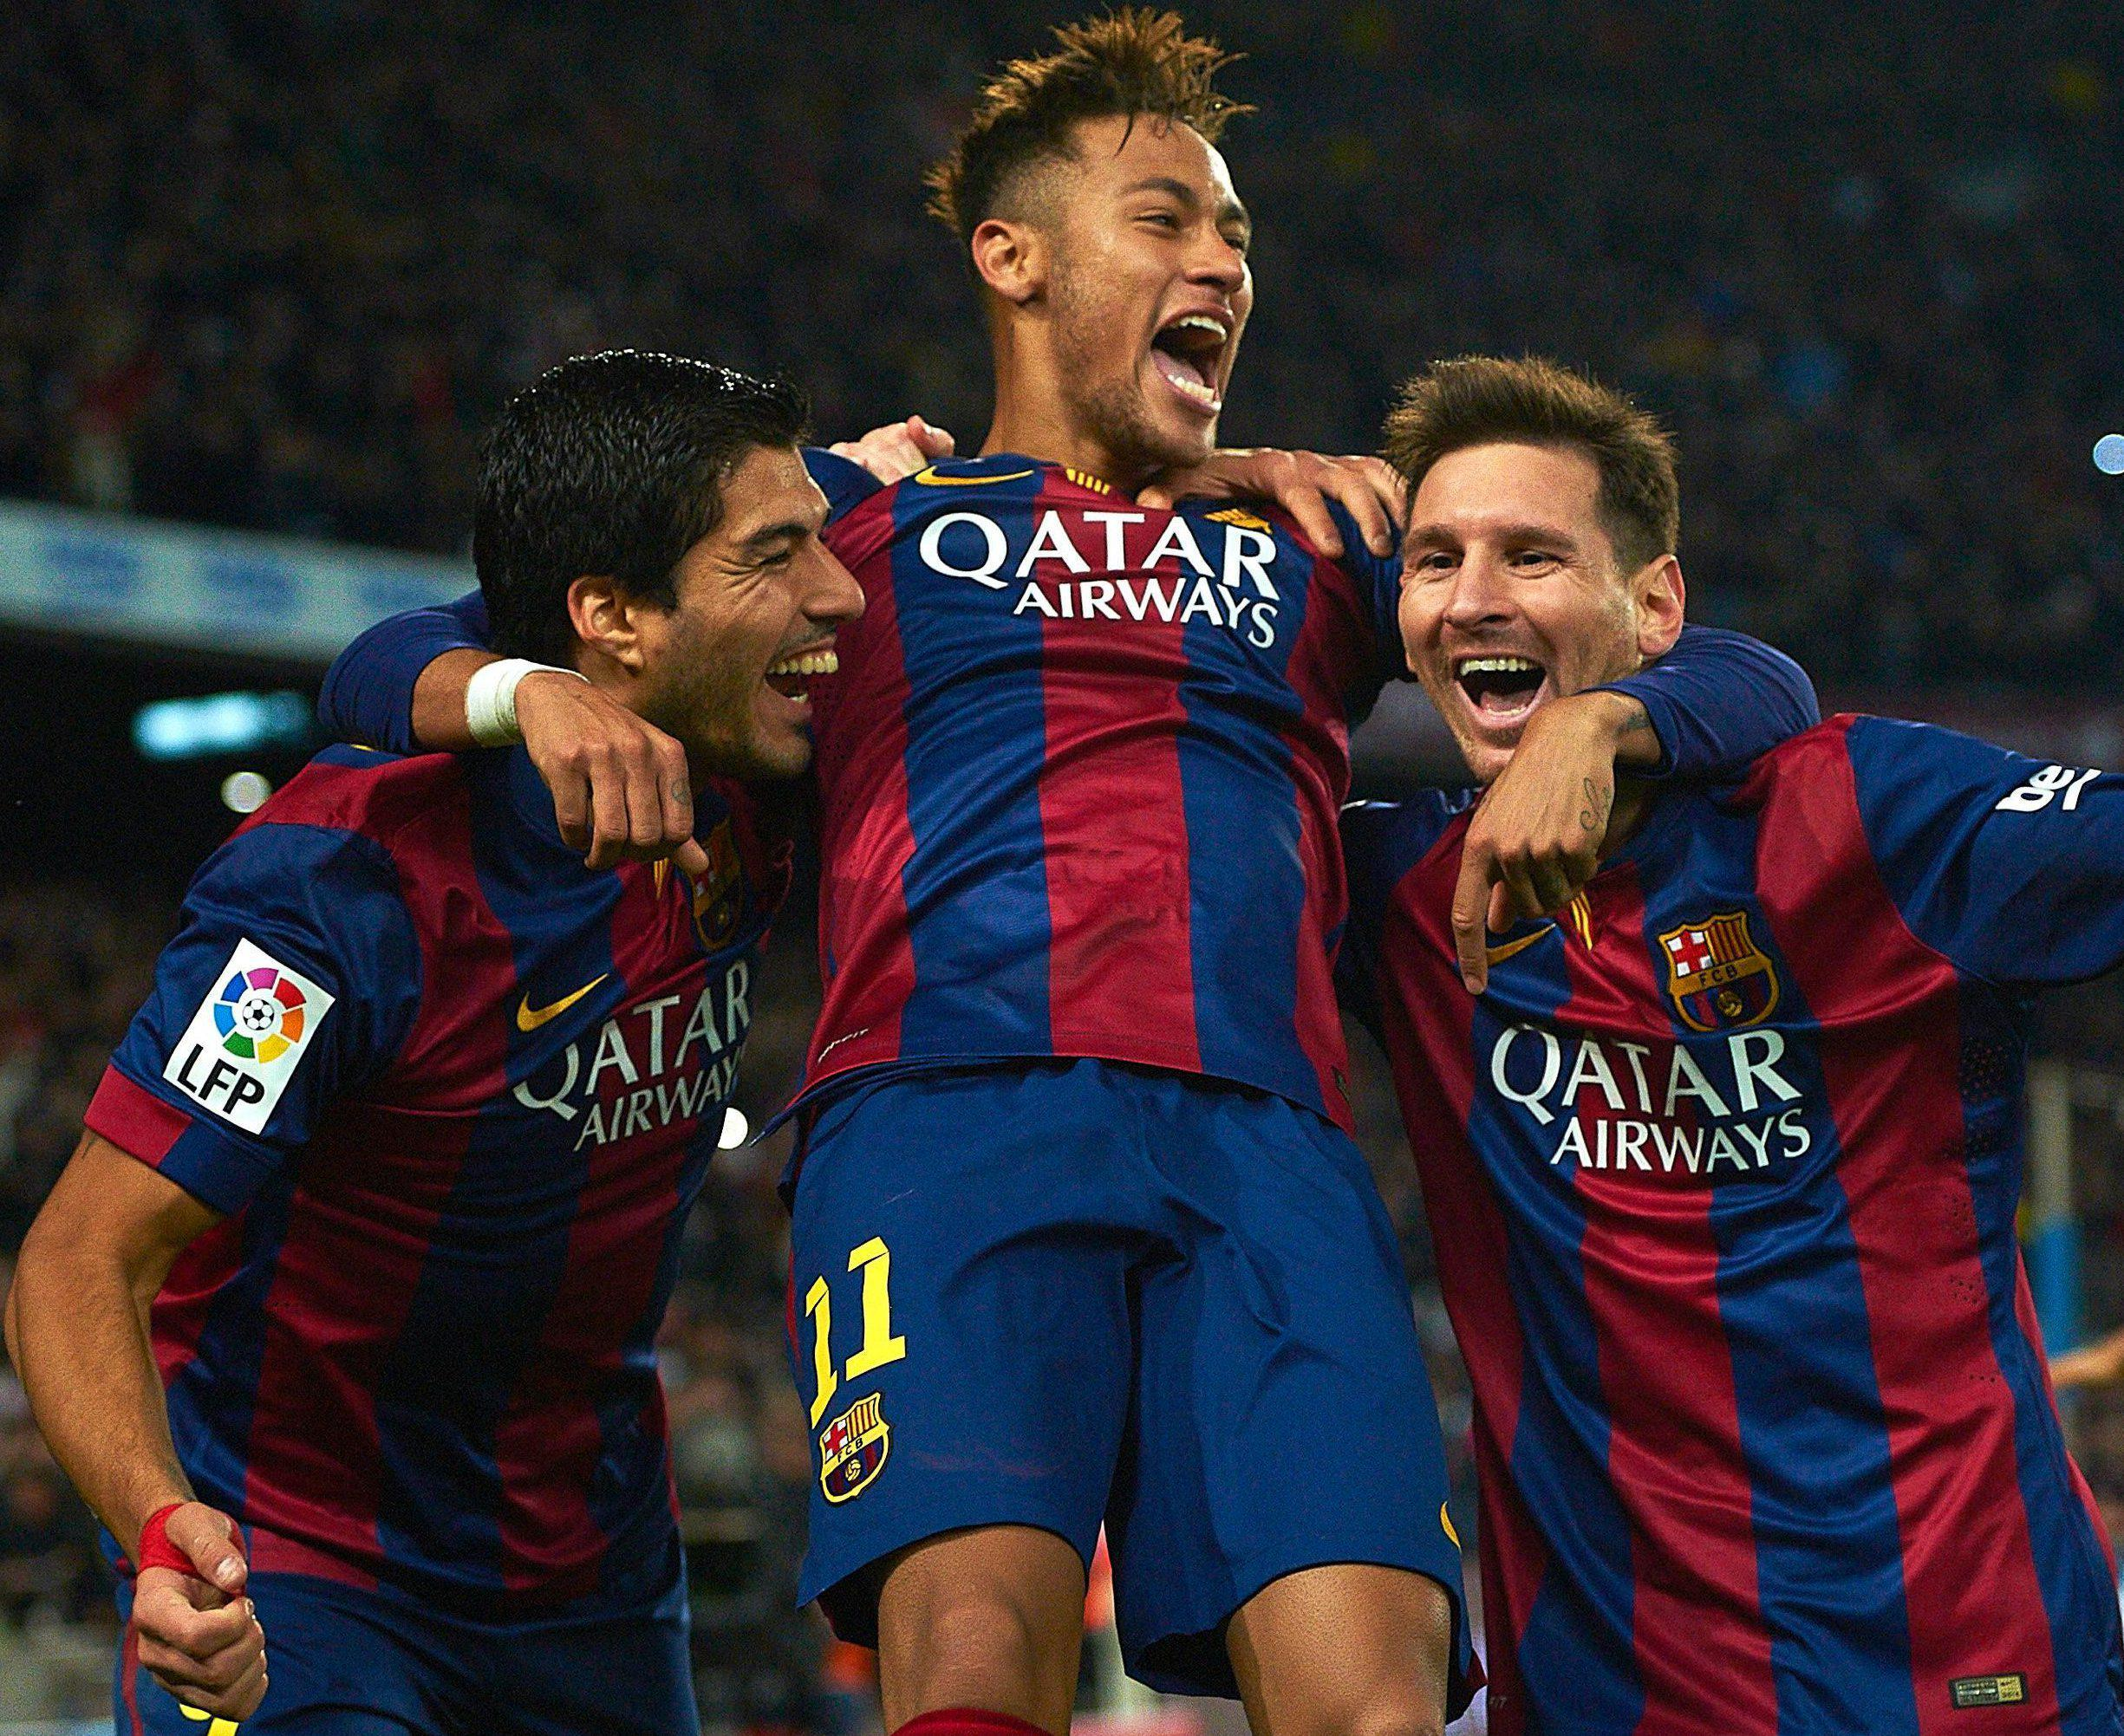 The MSN era is well and truly over